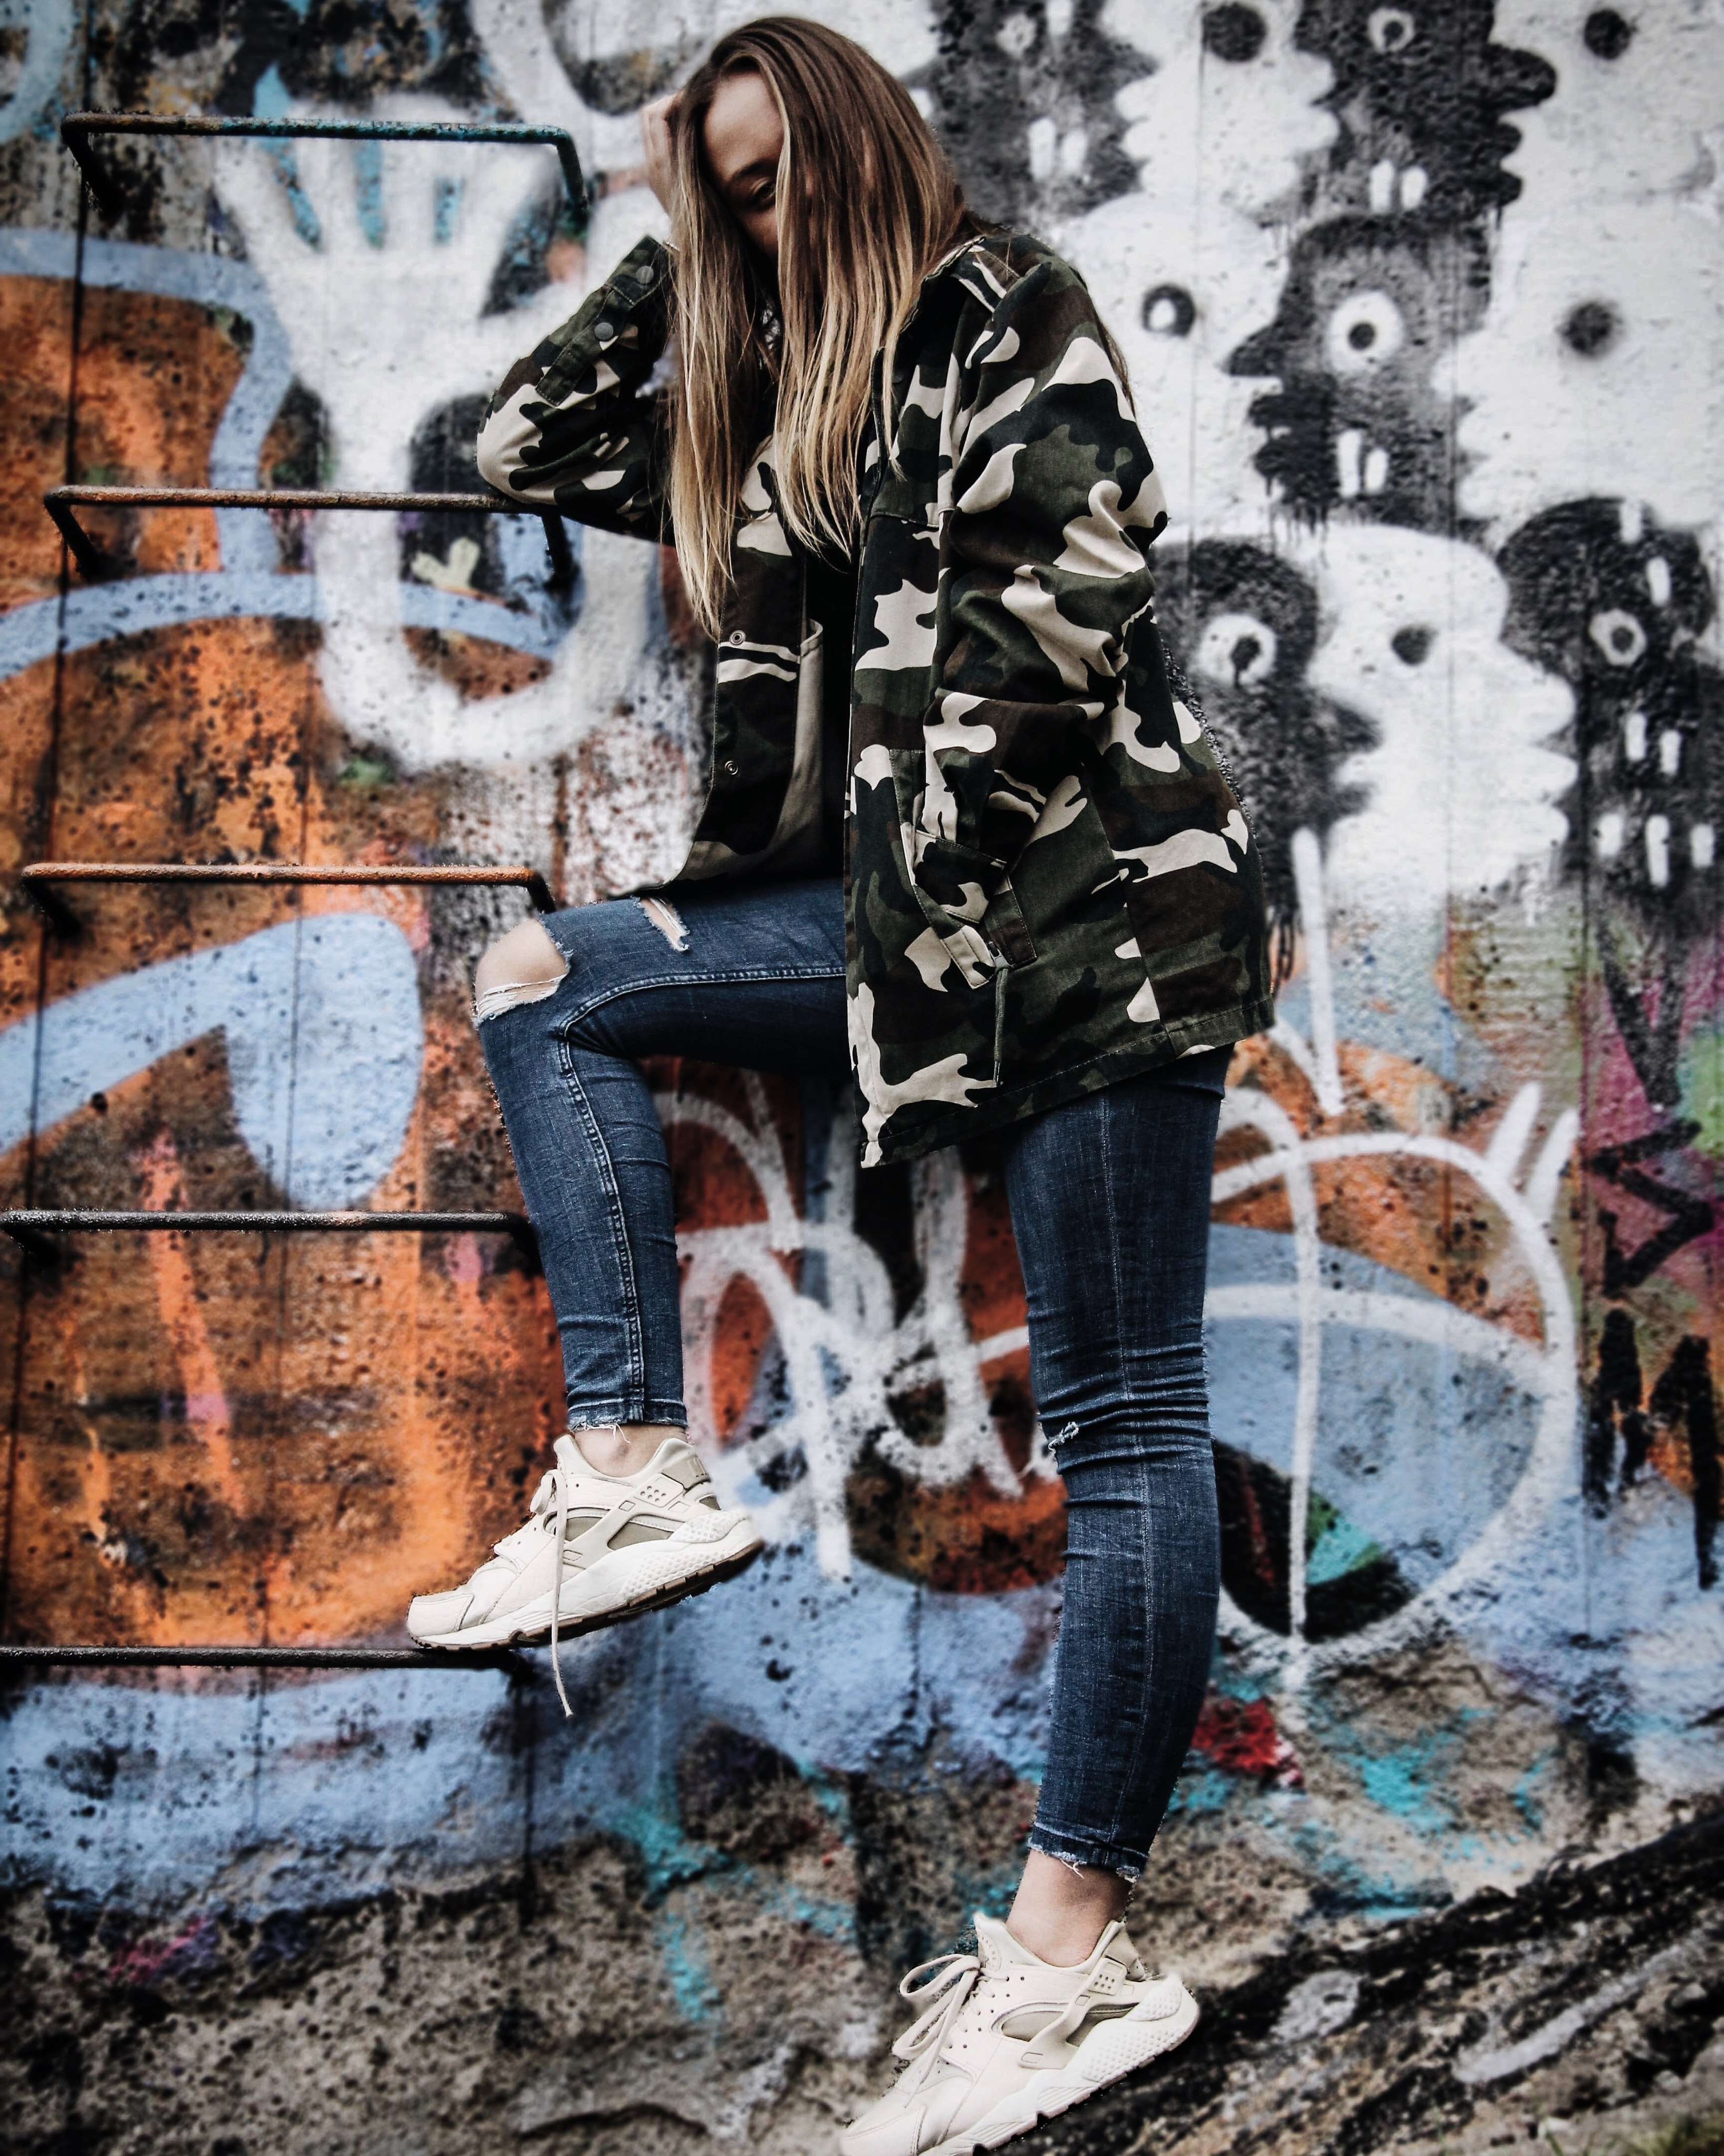 women's gray and black camouflage jacket standing beside wall